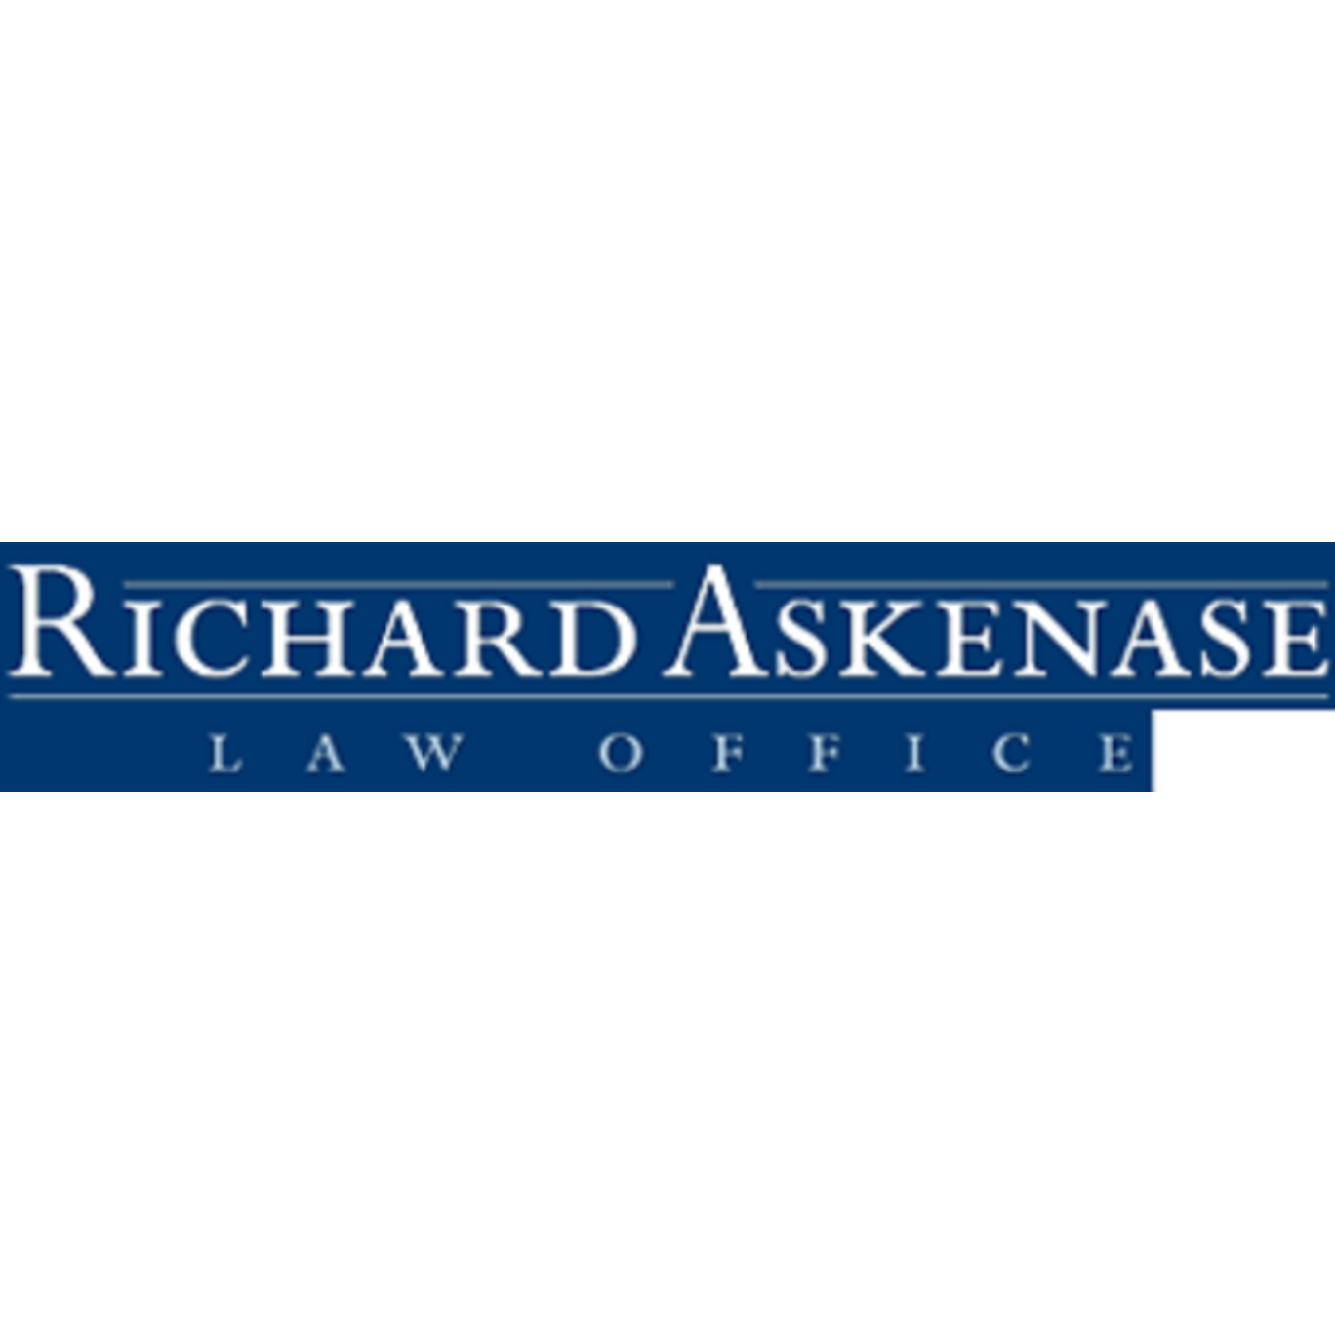 Richard Askenase Law Office image 1